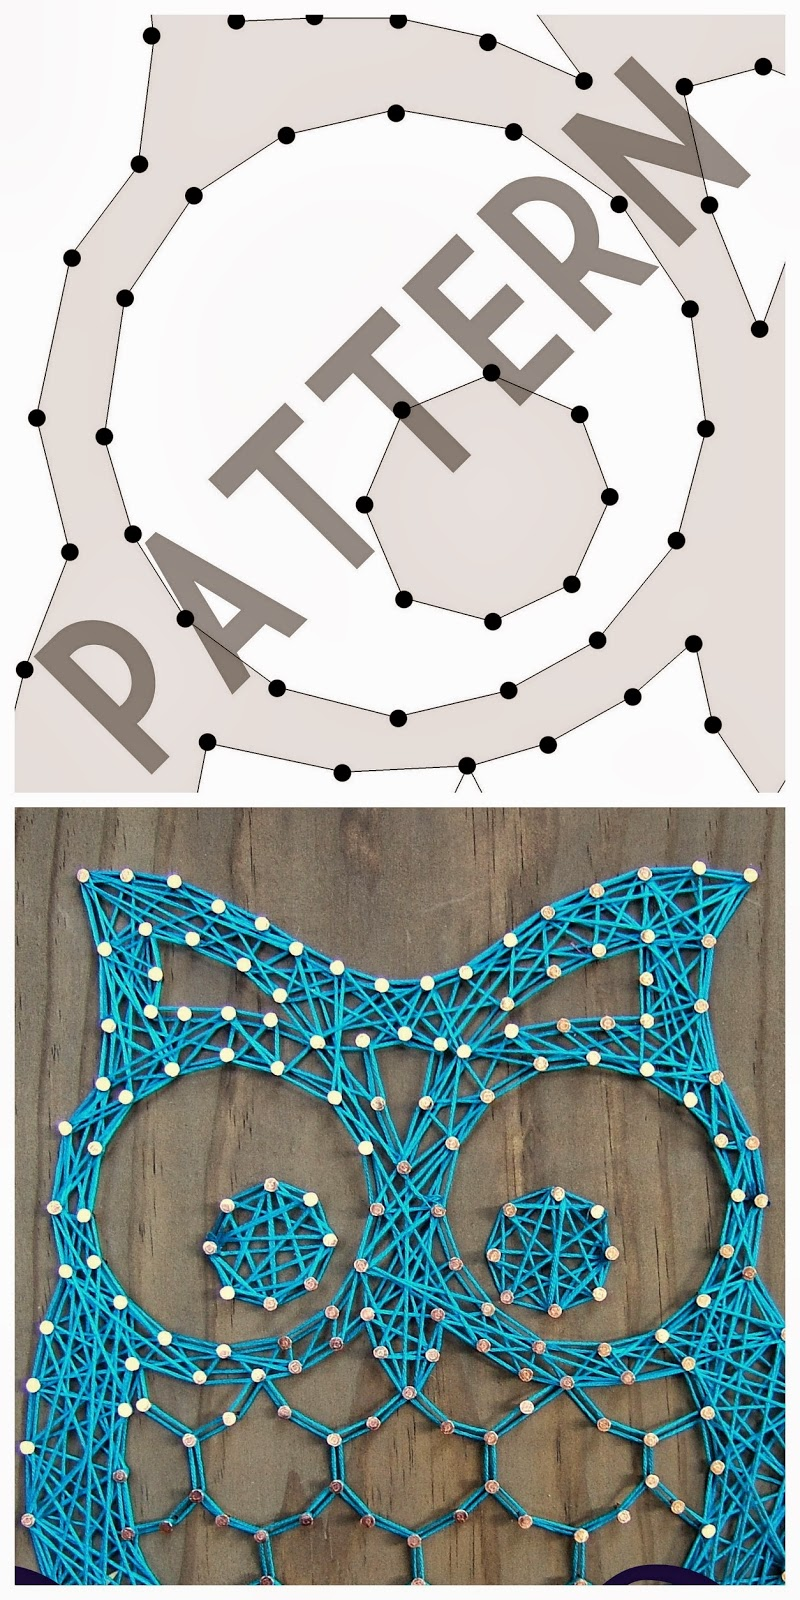 Comprehensive image pertaining to free printable string art patterns